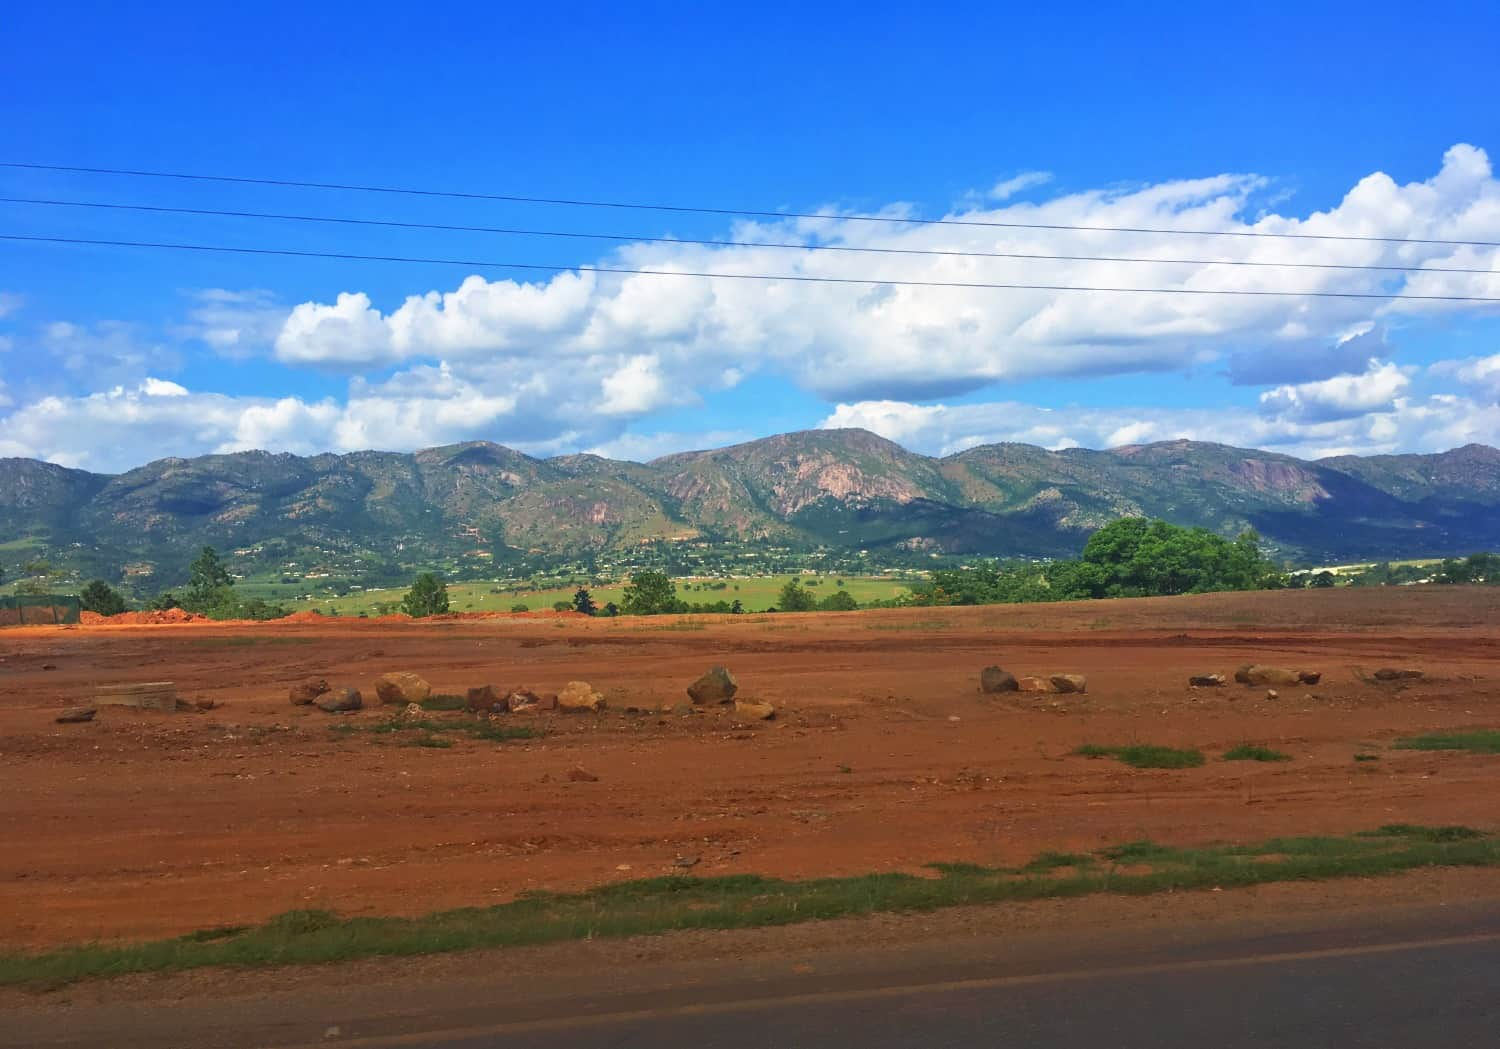 Views of Swaziland